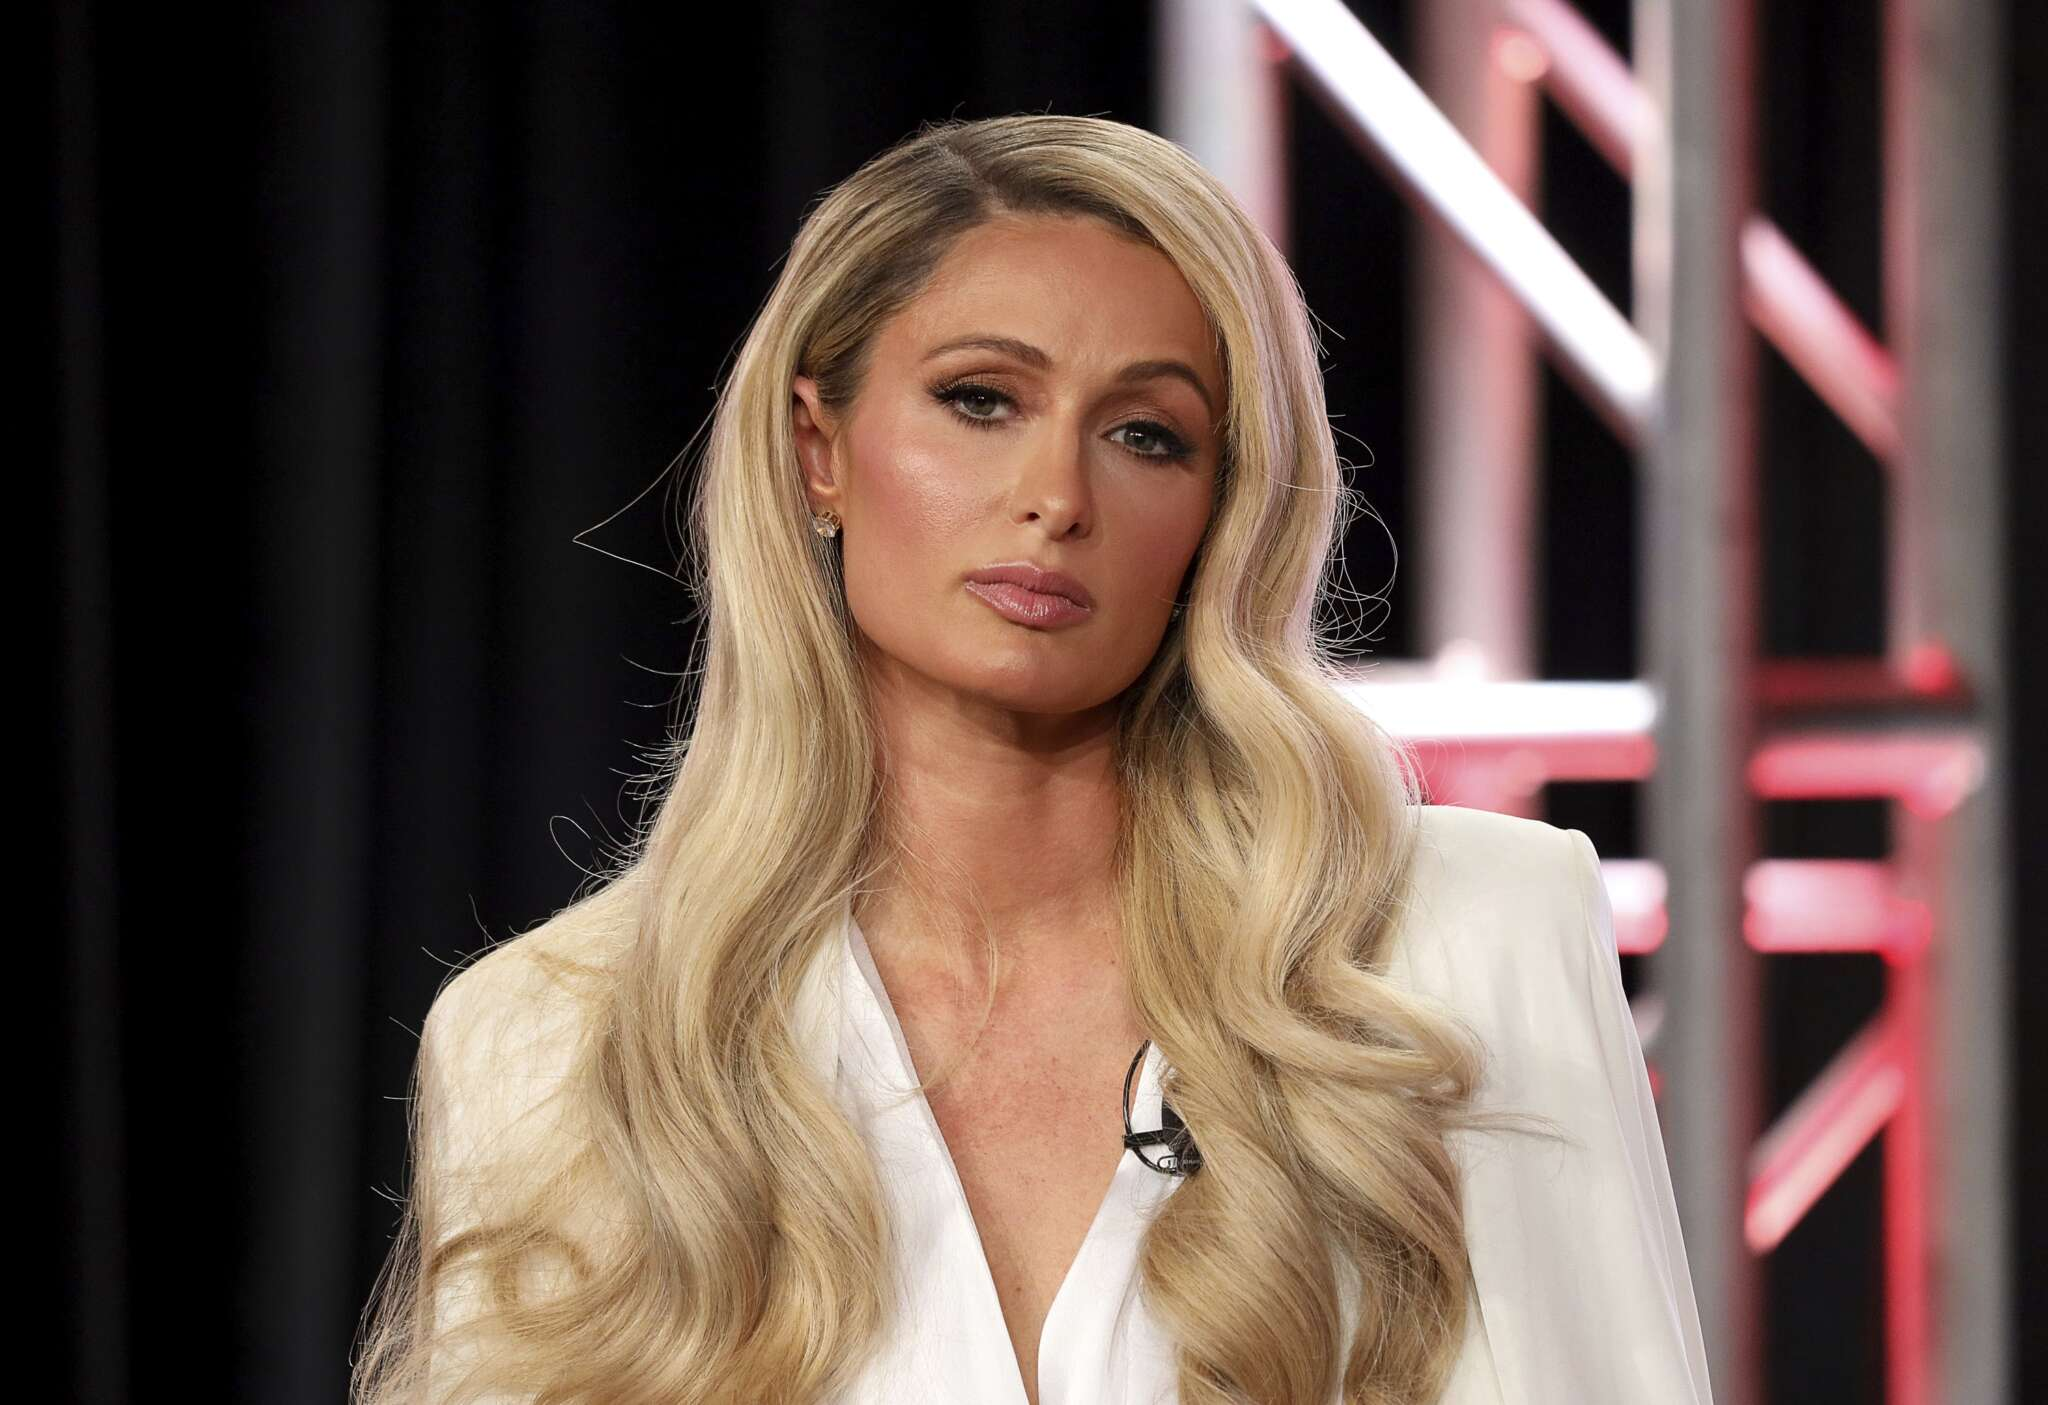 paris-hilton-reveals-shes-undergoing-ivf-and-already-thinking-of-names-for-twins